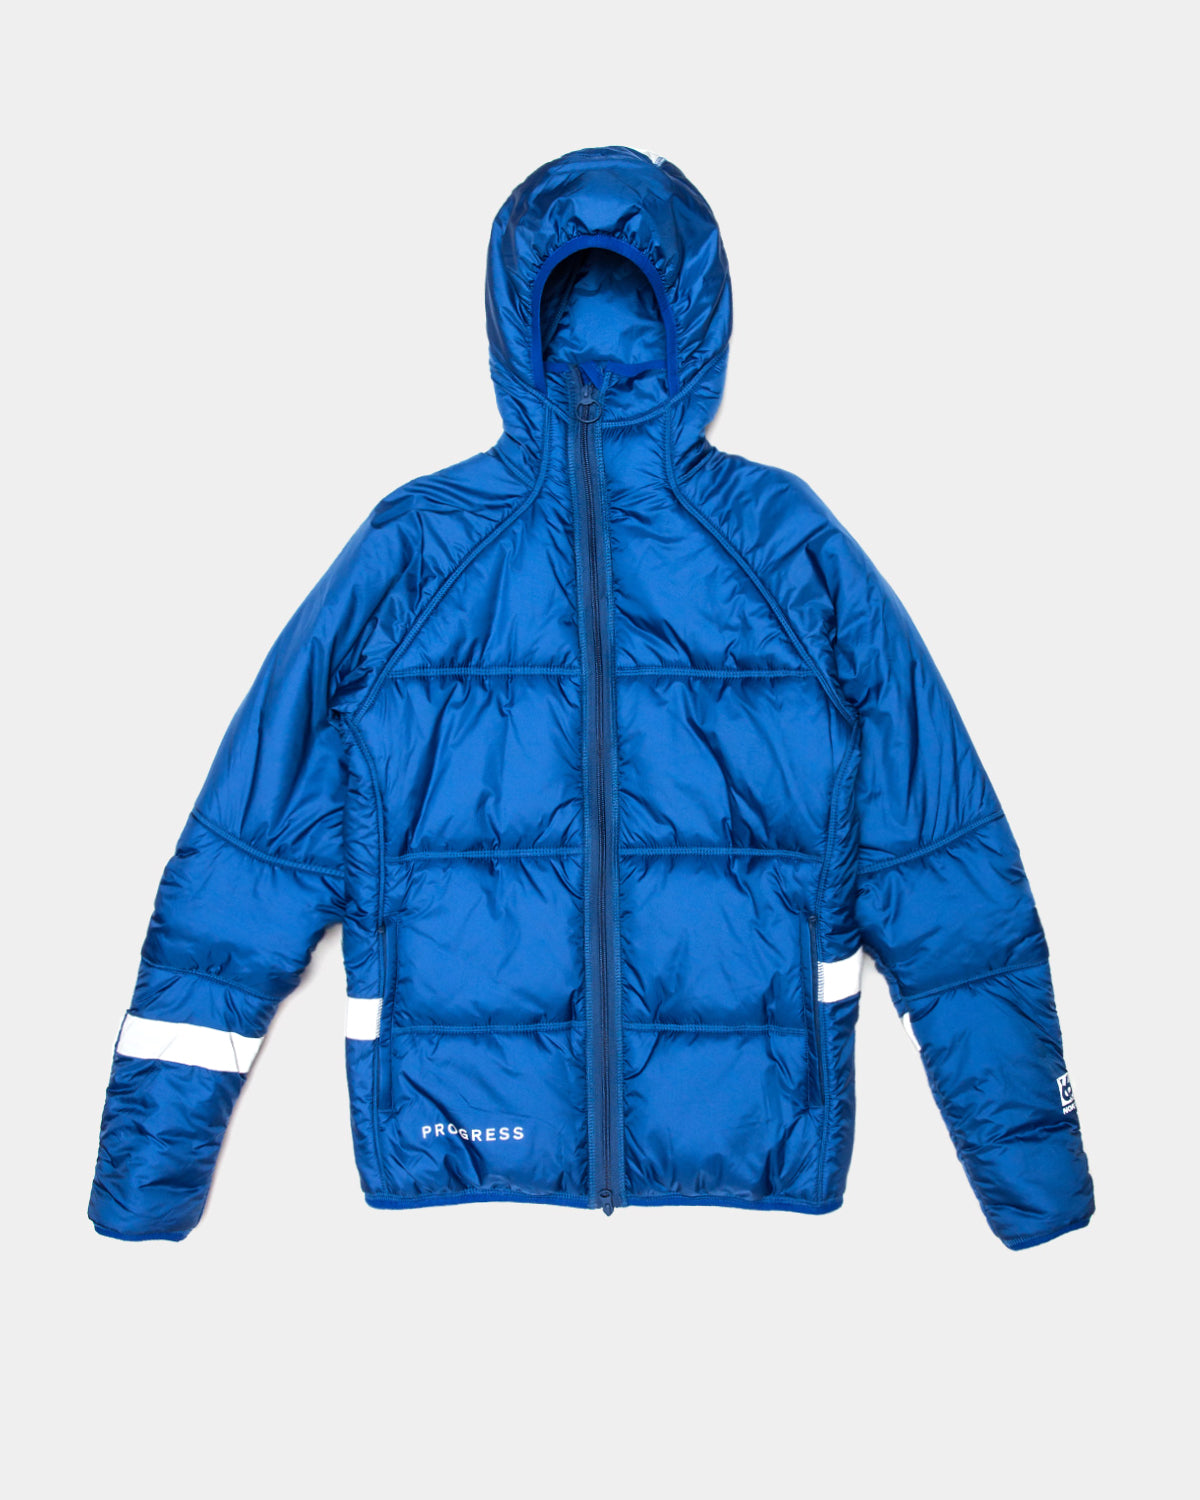 Soulland - Soulland x 66 North Krist Jansson Jacket (Sky Blue)